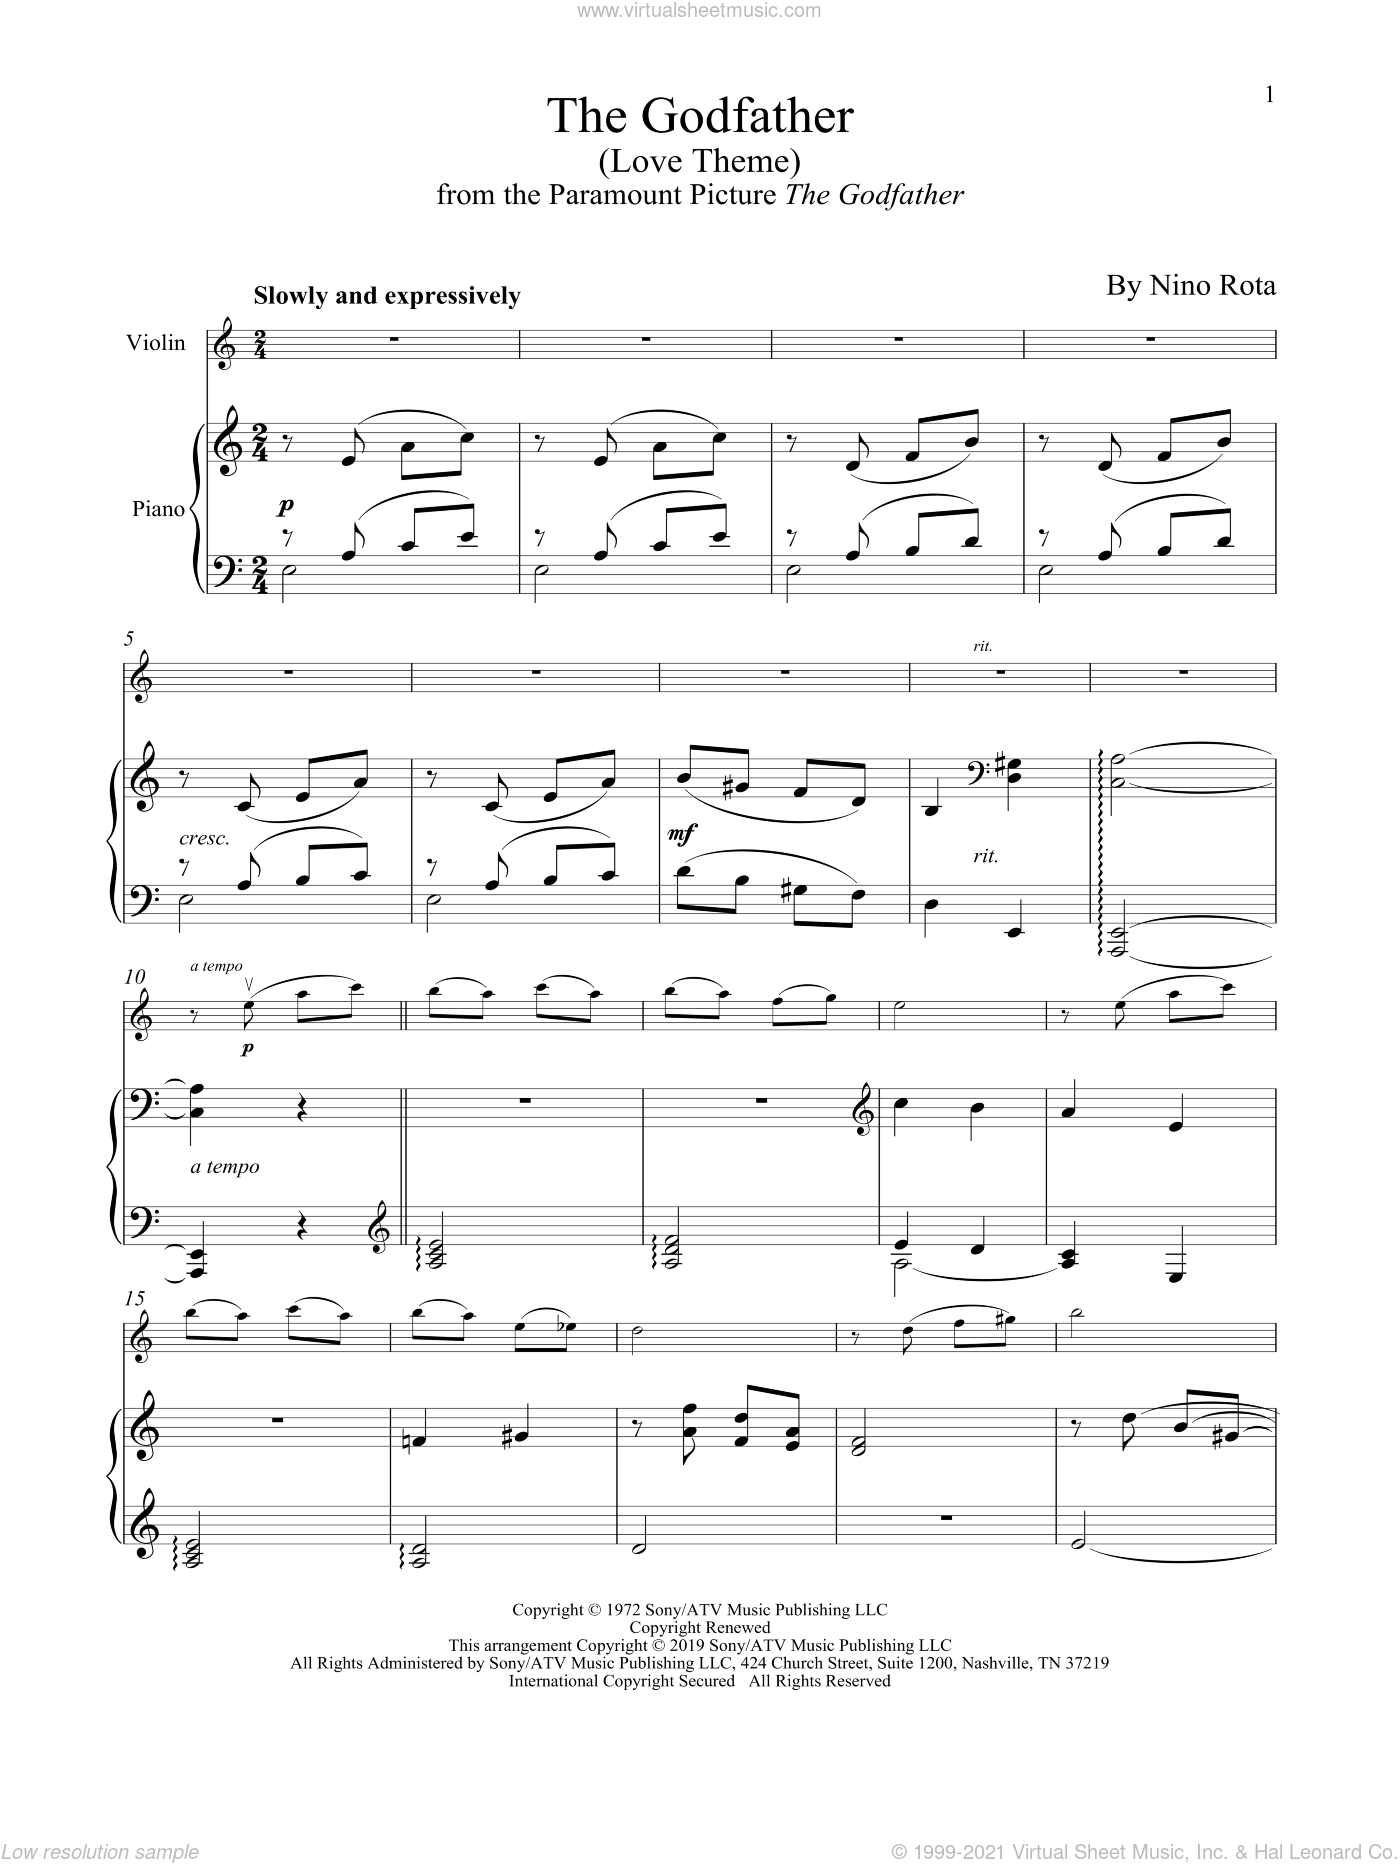 The Godfather (Love Theme) sheet music for violin and piano by Nino Rota, intermediate skill level